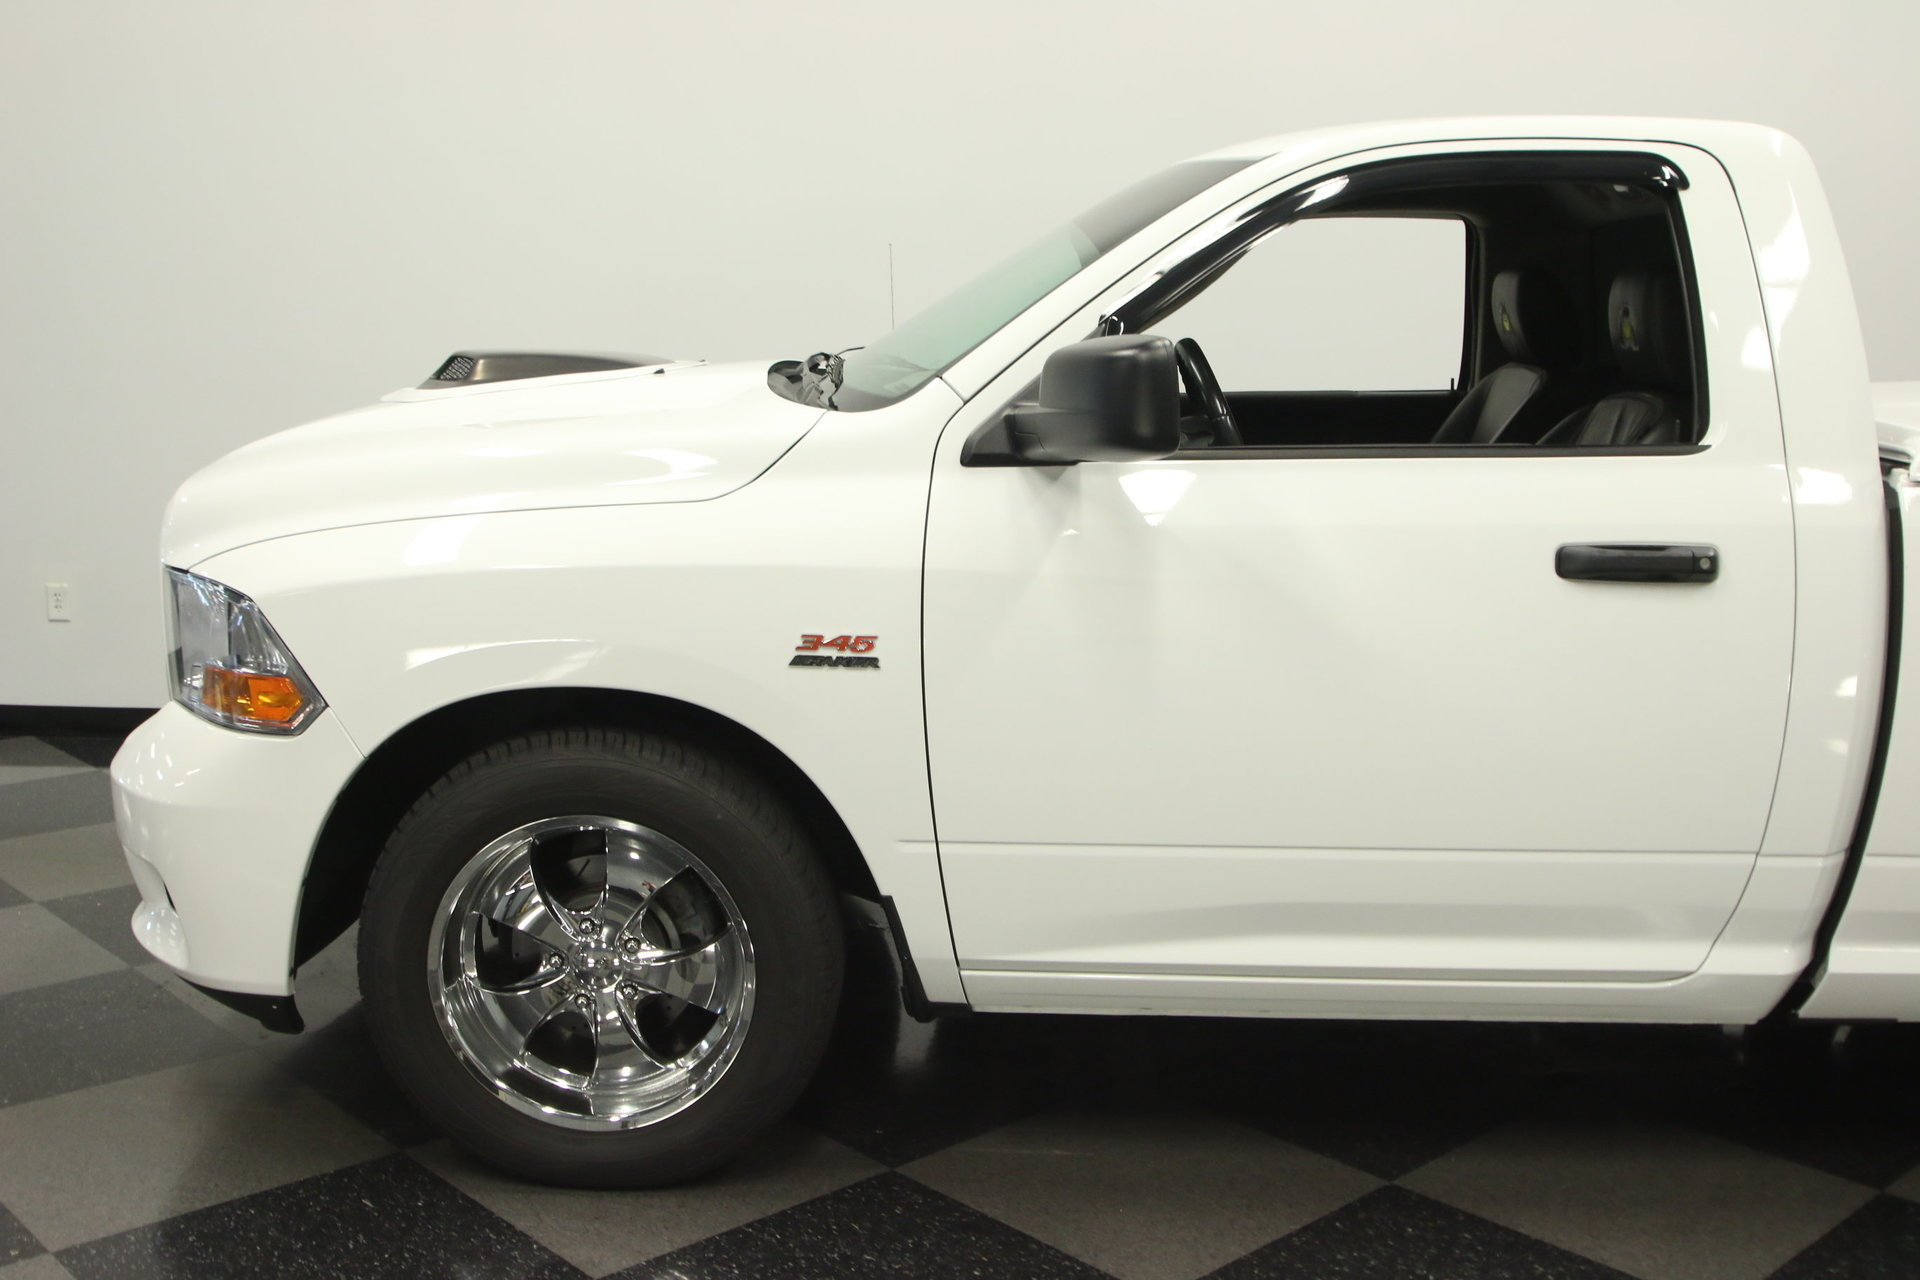 2012 Dodge Ram 1500 Shaker Streetside Classics The Nations Tires Spincar View Play Video 360